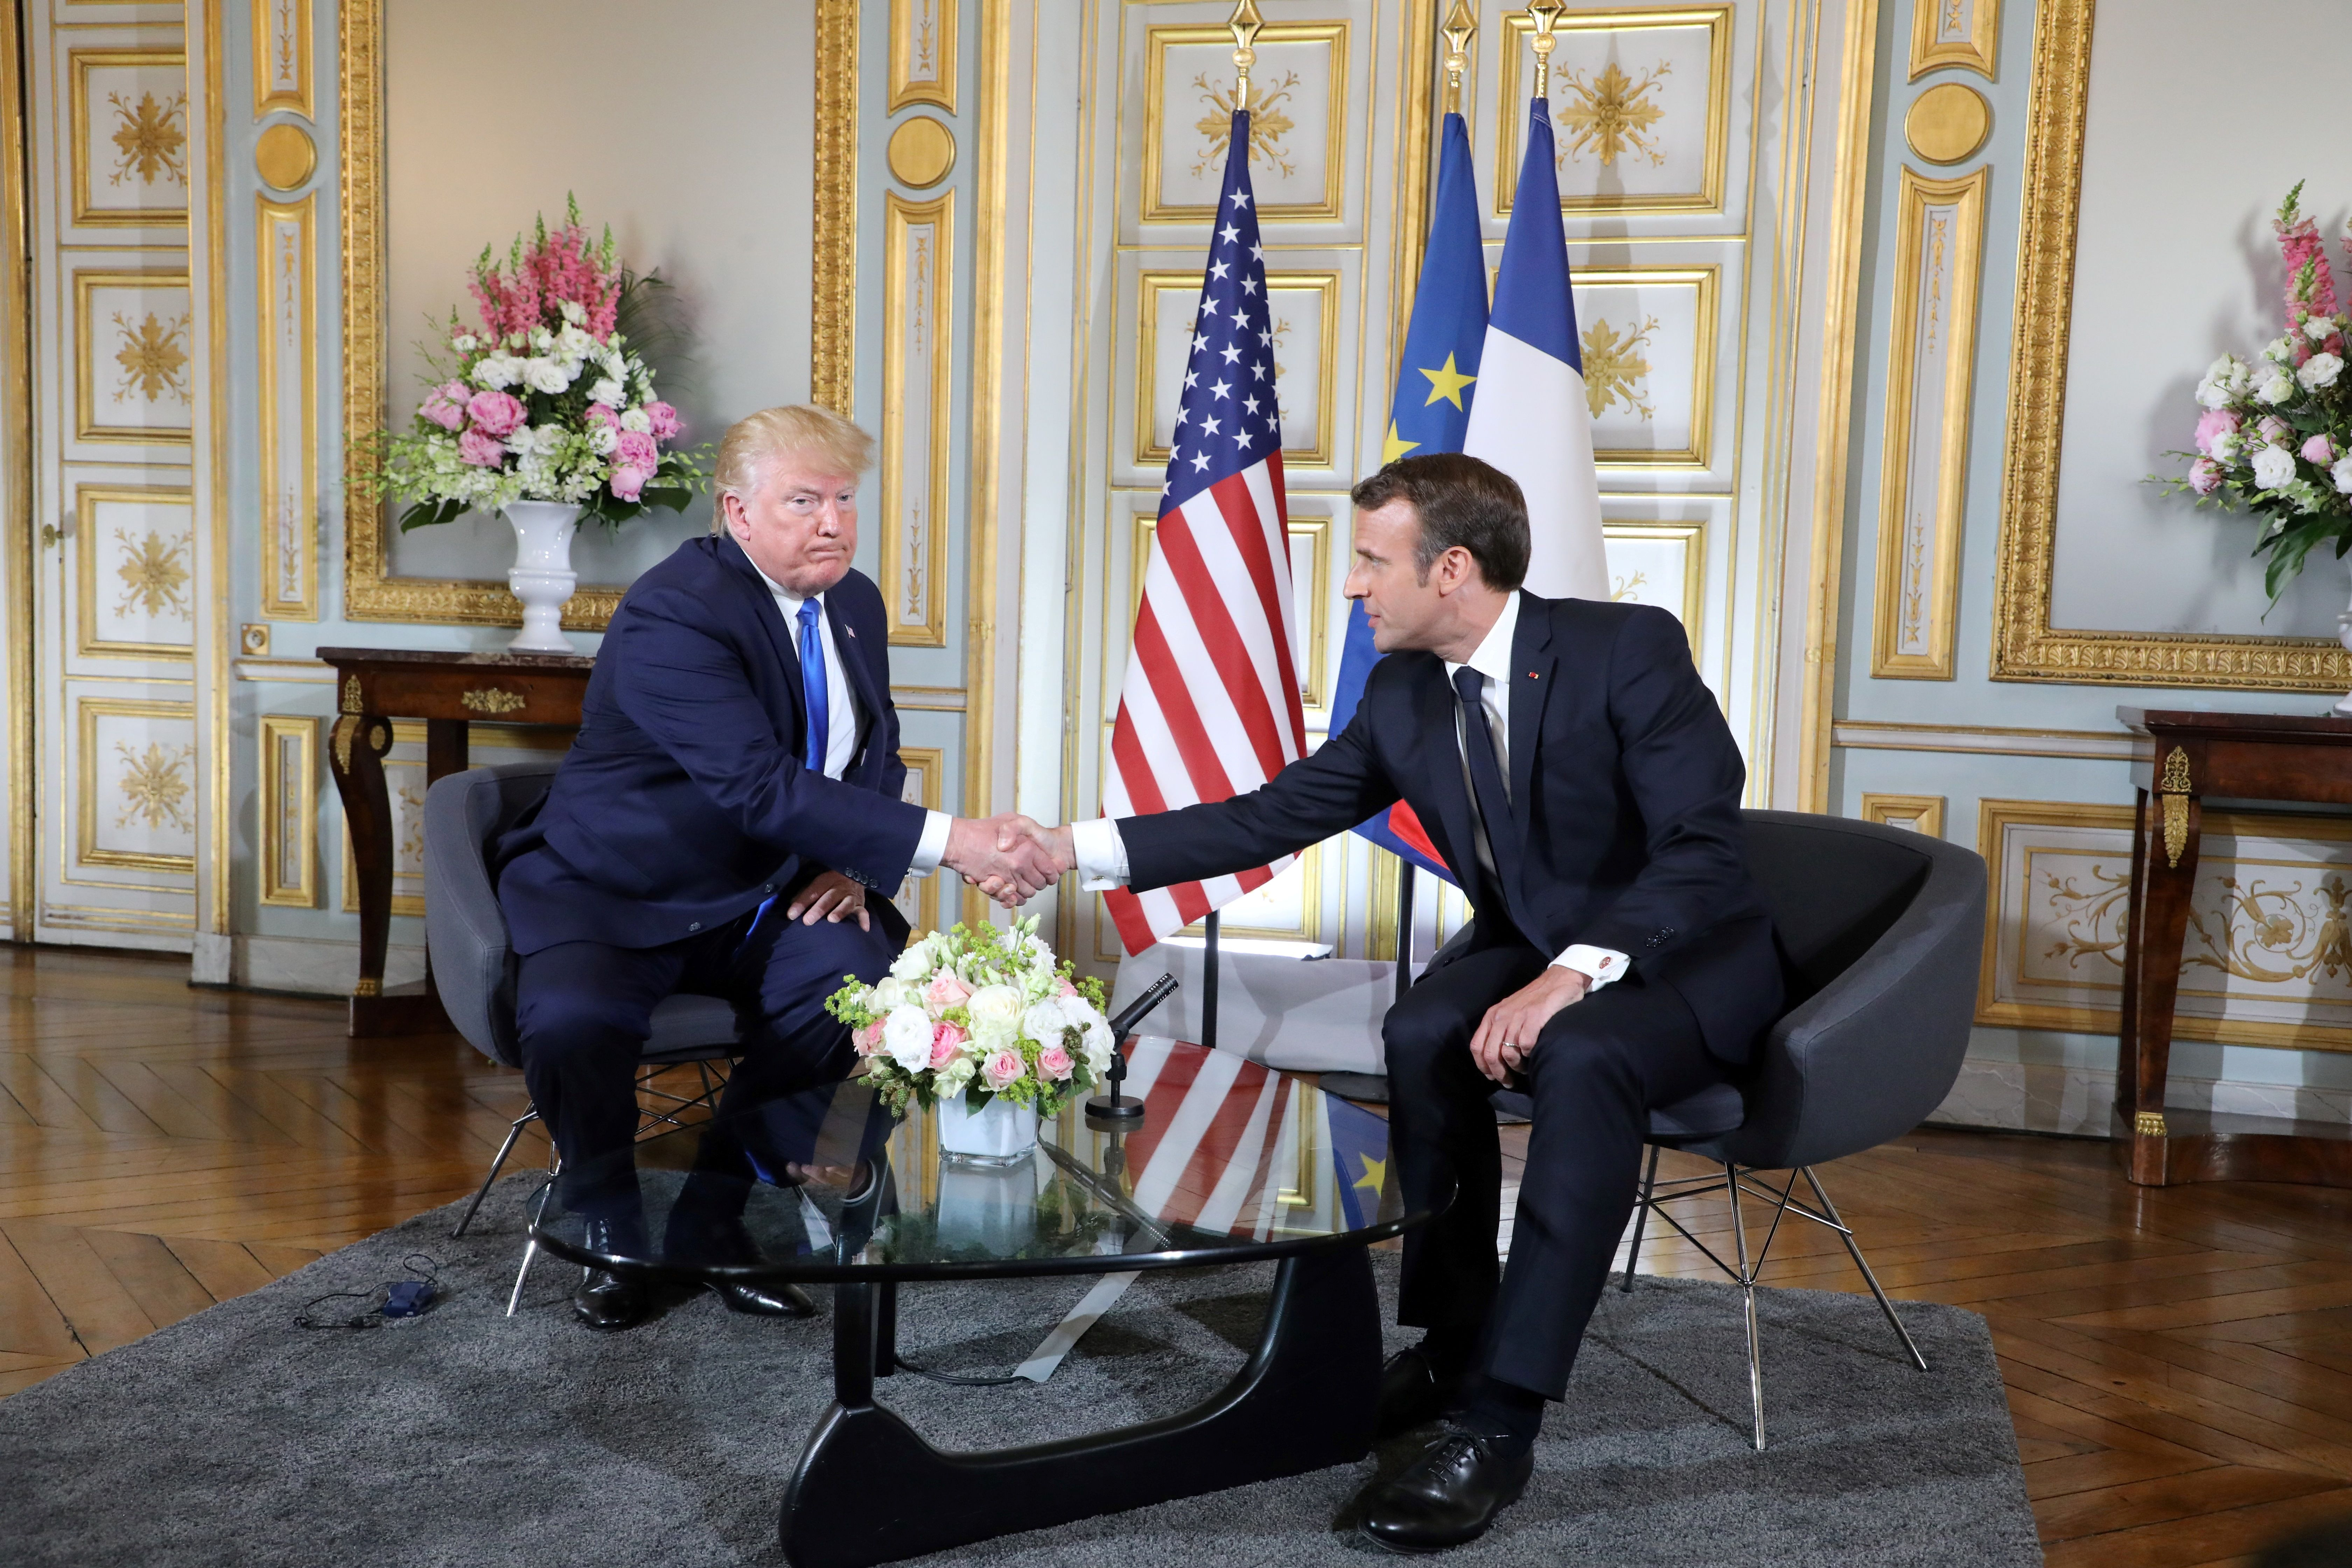 US President Donald Trump (L) shakes hands during a meeting with the French President Emmanuel Macron at the Prefecture of Caen, Normandy, north-western France, on June 6, 2019, on the sidelines of D-Day commemorations marking the 75th anniversary of the World War II Allied landings in Normandy. (Photo by Ludovic MARIN / POOL / AFP)        (Photo credit should read LUDOVIC MARIN/AFP/Getty Images)